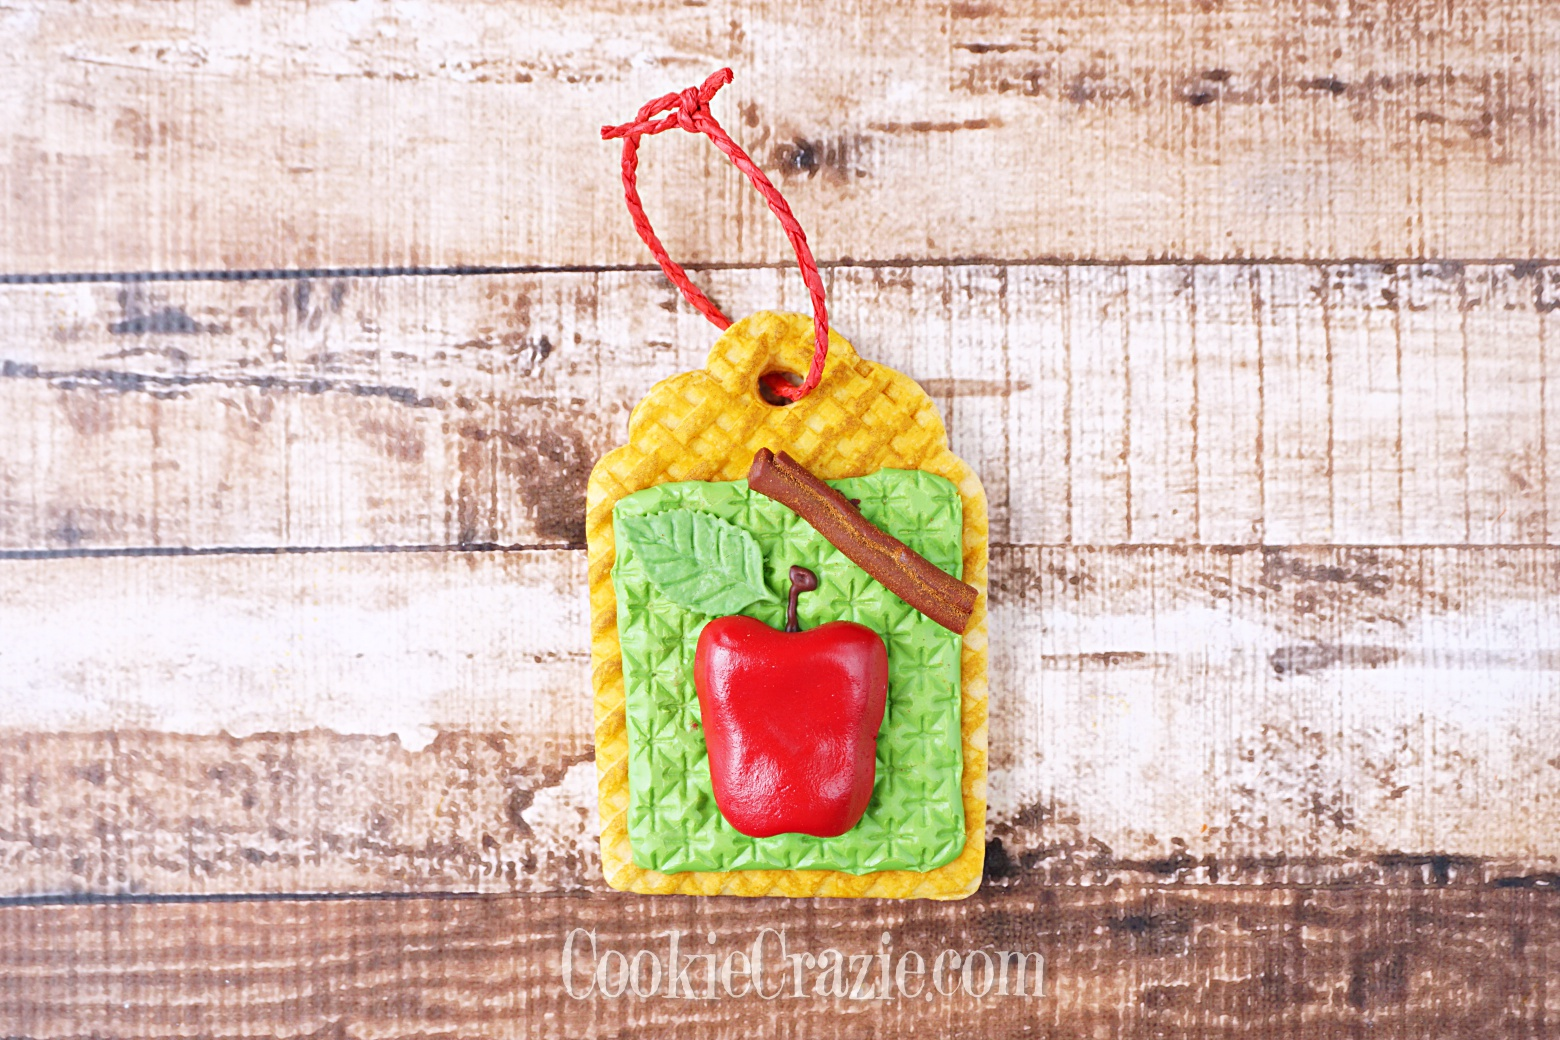 Apple Harvest Gift Tag Decorated Sugar Cookie YouTube video  HERE